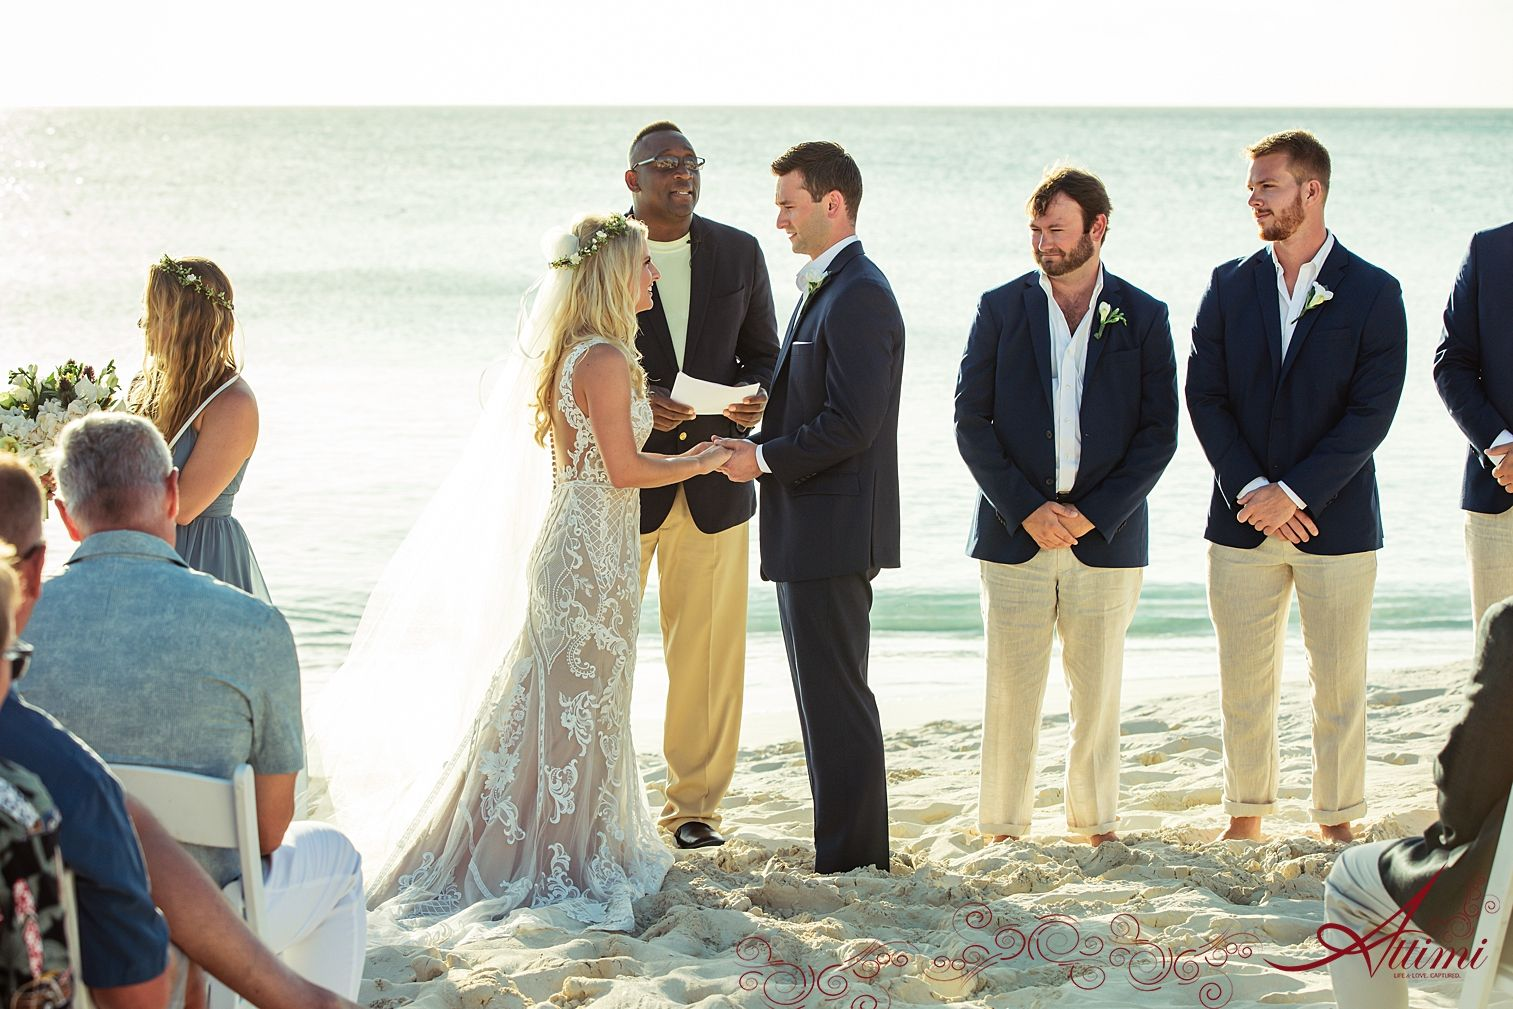 The Tuscany Wedding, On Grace Bay, Turks And Caicos. The Title Tells It All… Or Not?!?